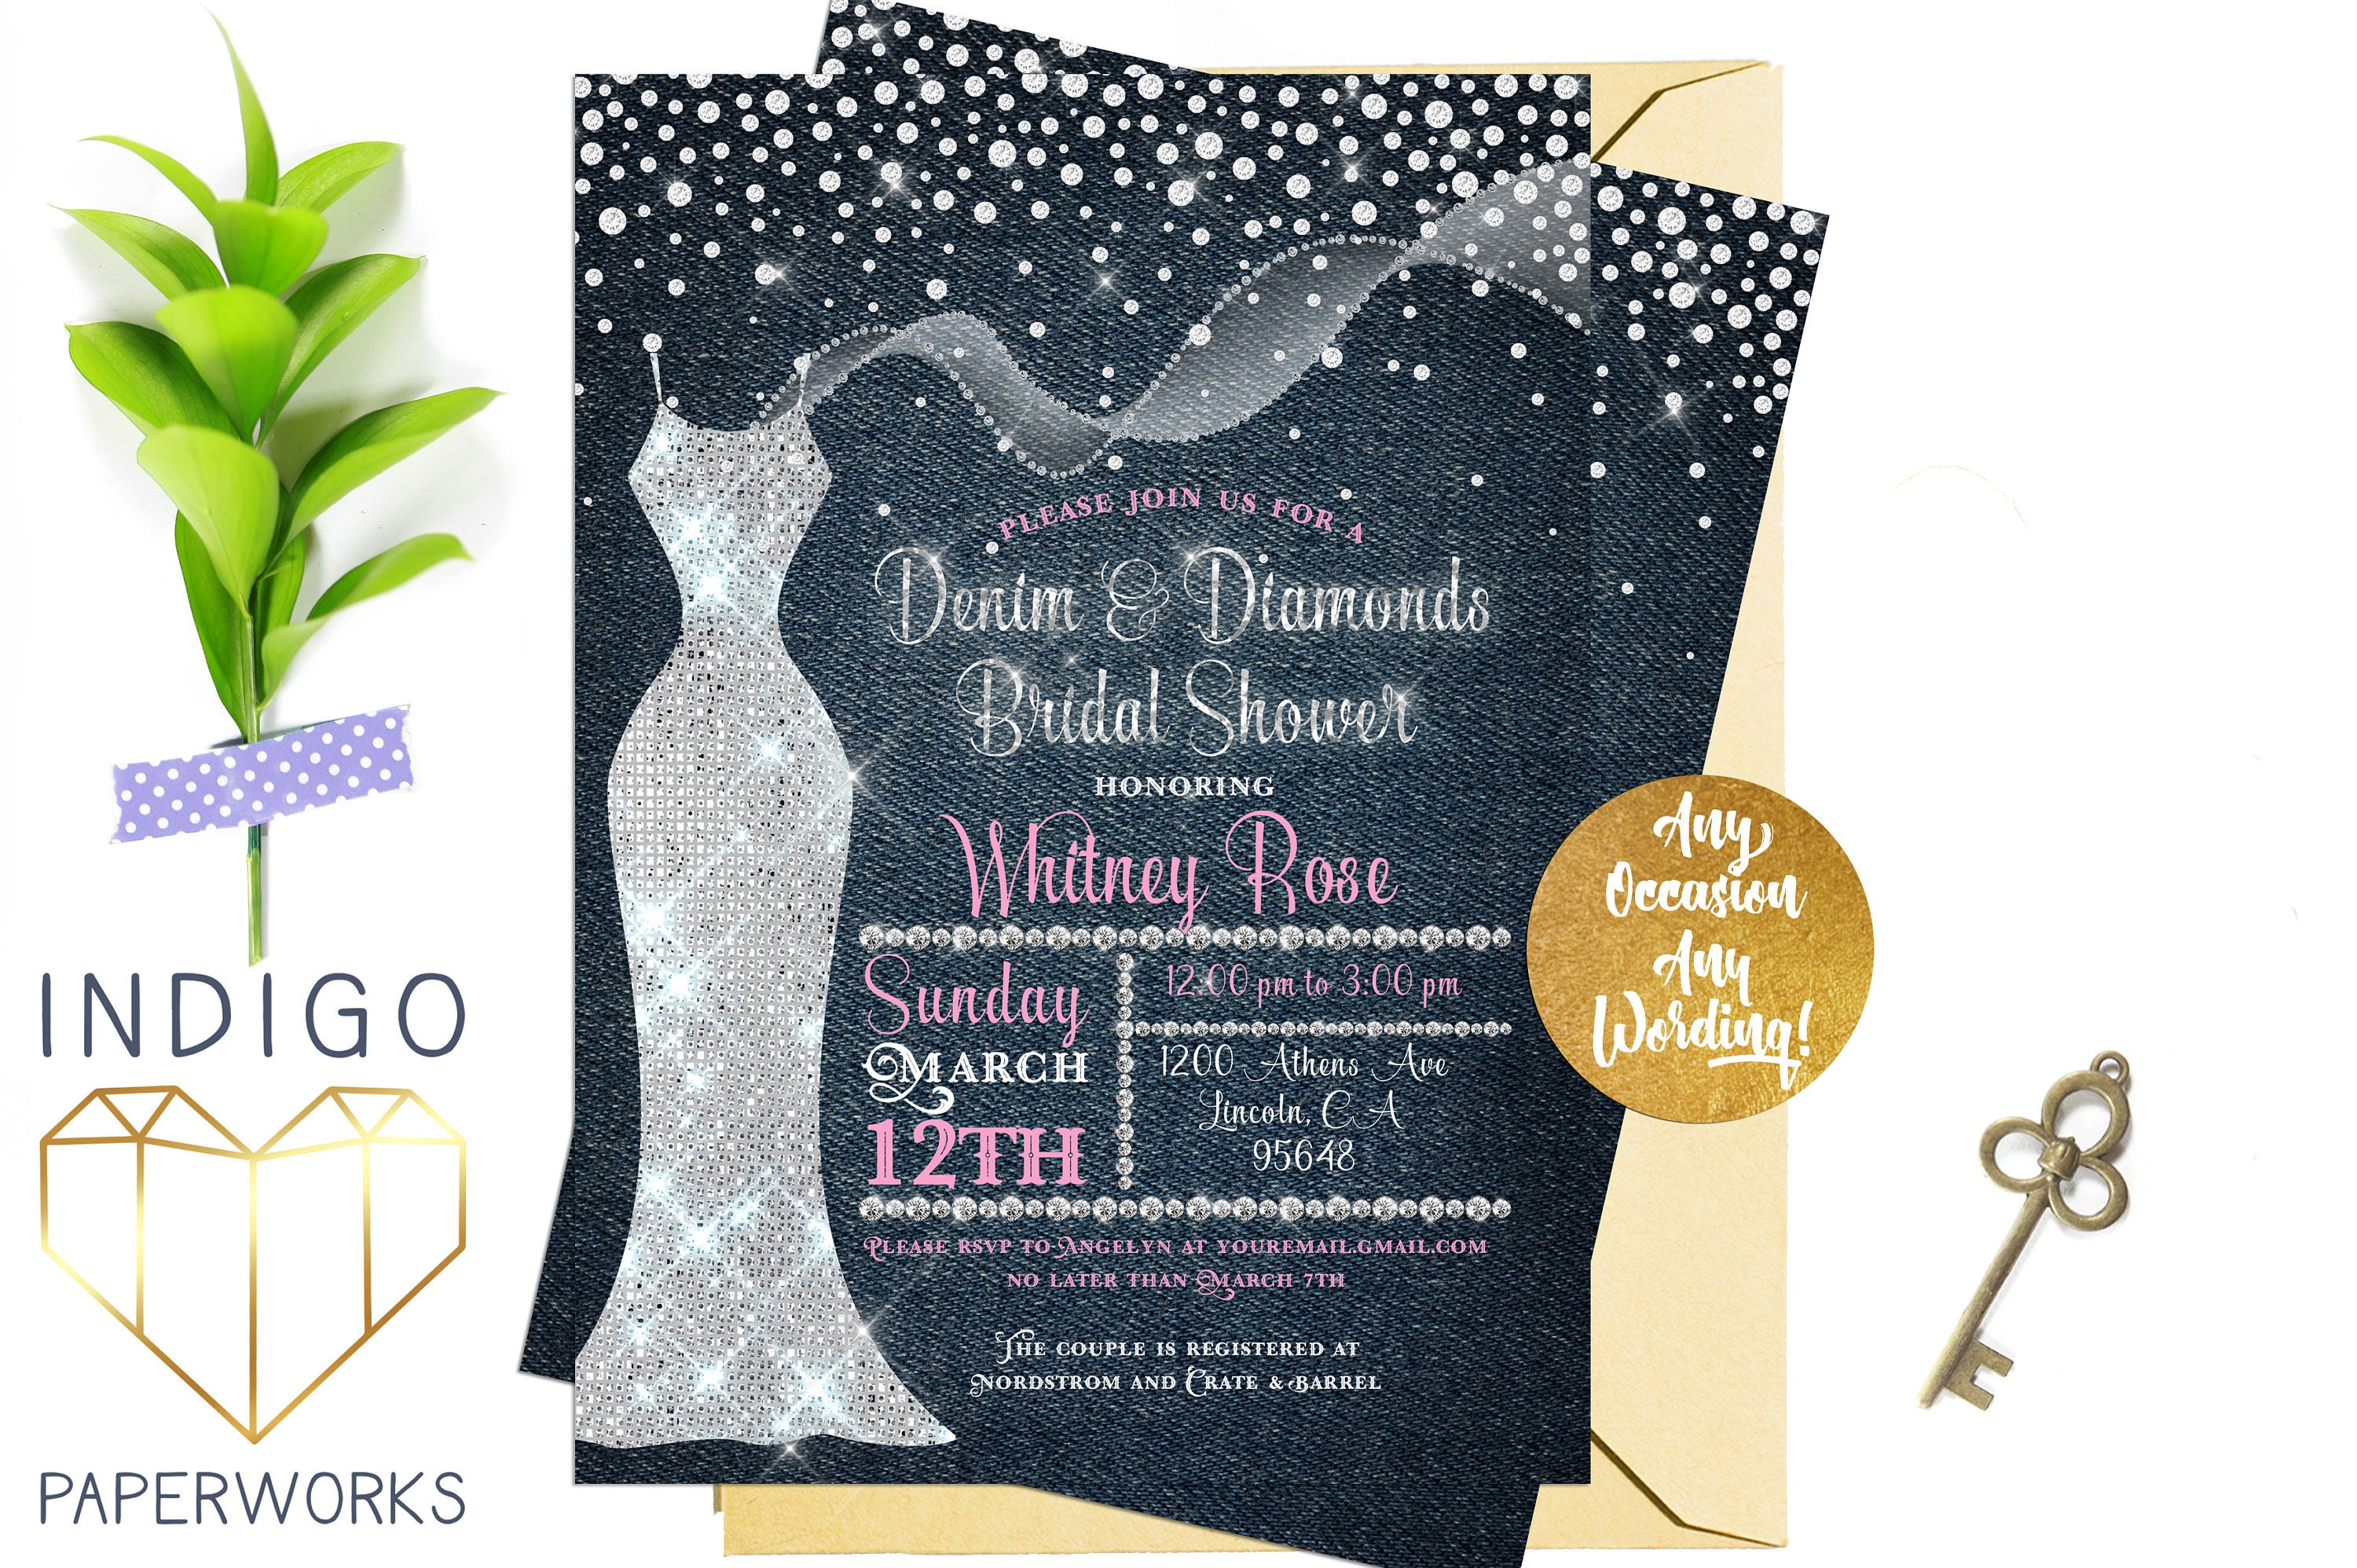 Denim Wedding Invitations: Denim And Diamonds Bridal Shower Invitation Blue Jean